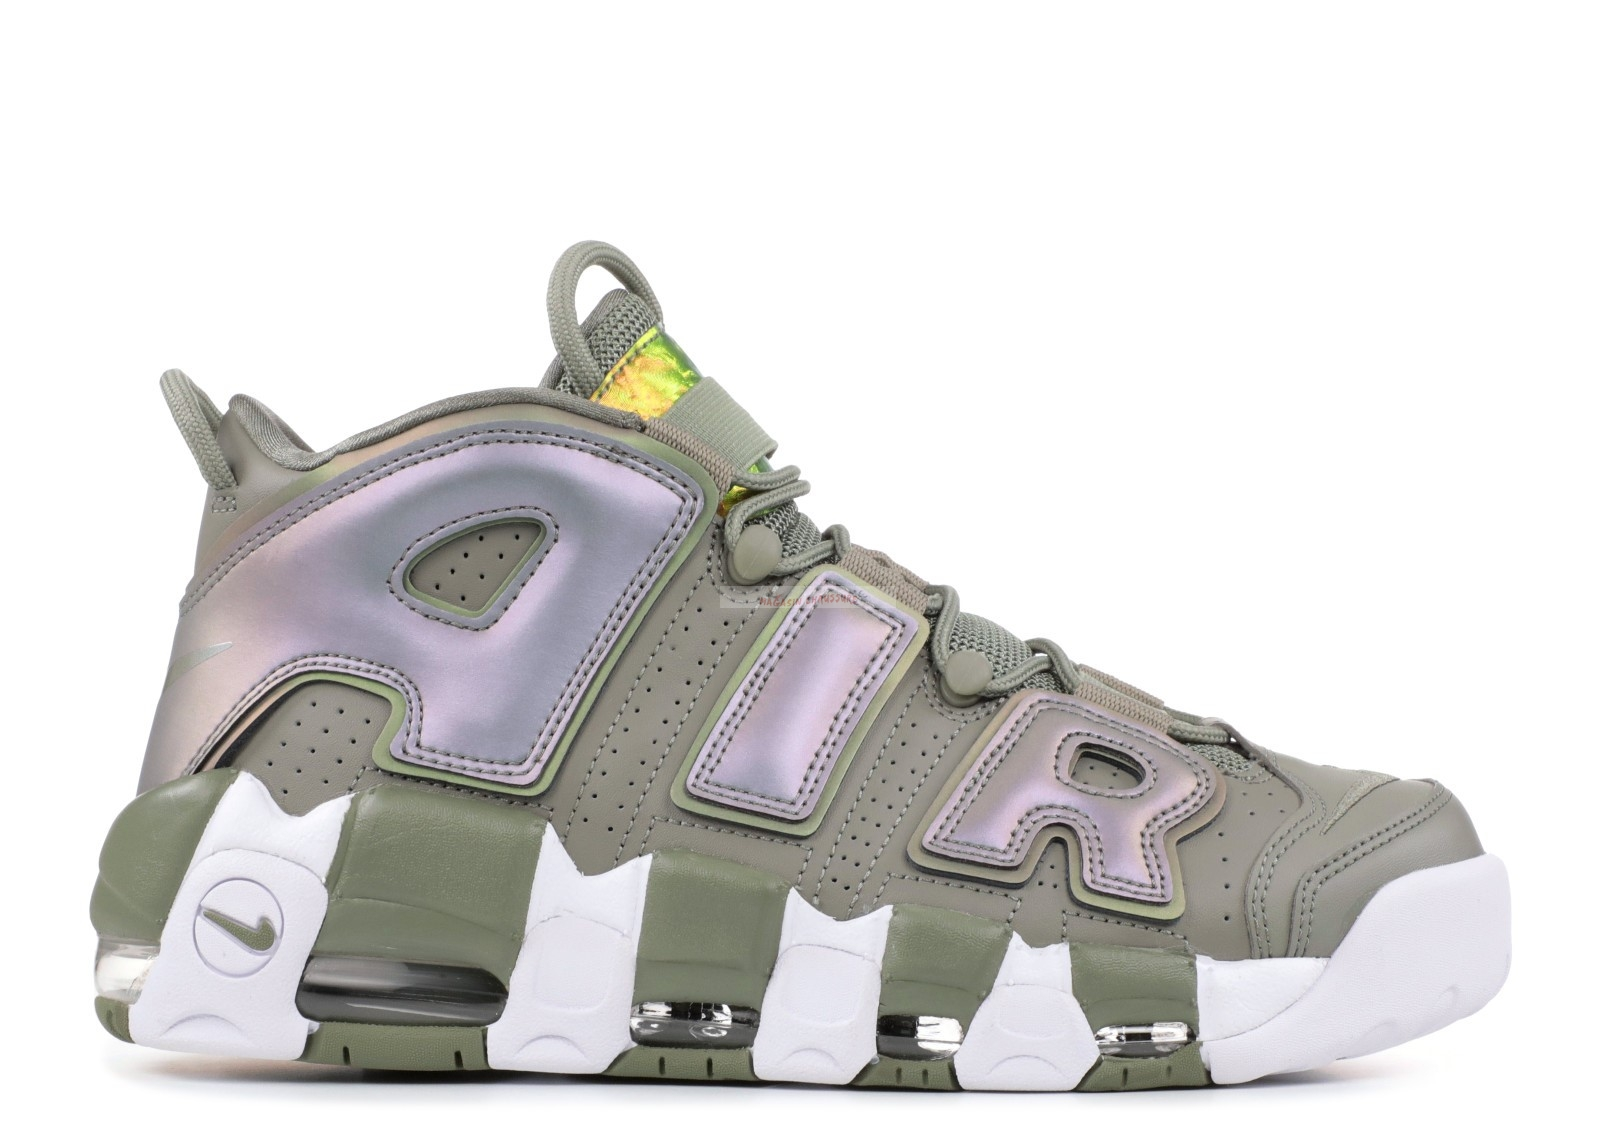 Nike Air More Uptempo - Femme Olive (917593-001) Chaussure de Basket